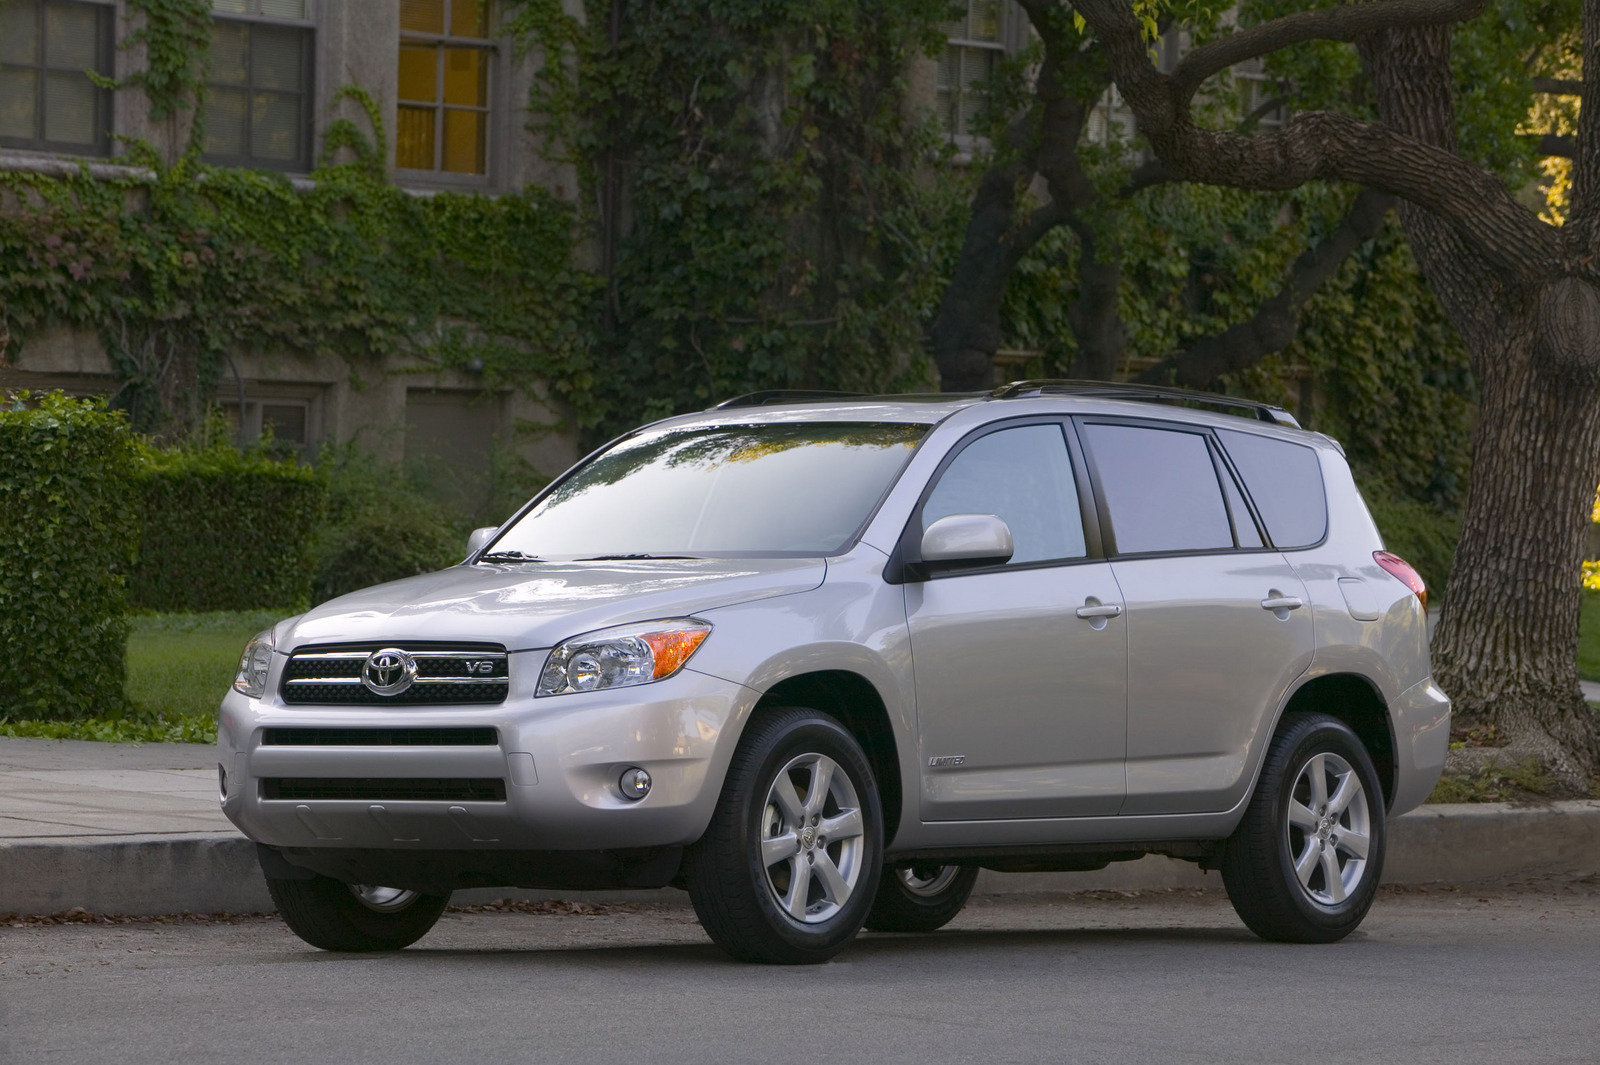 2006 toyota rav4 picture 93581 car review top speed. Black Bedroom Furniture Sets. Home Design Ideas